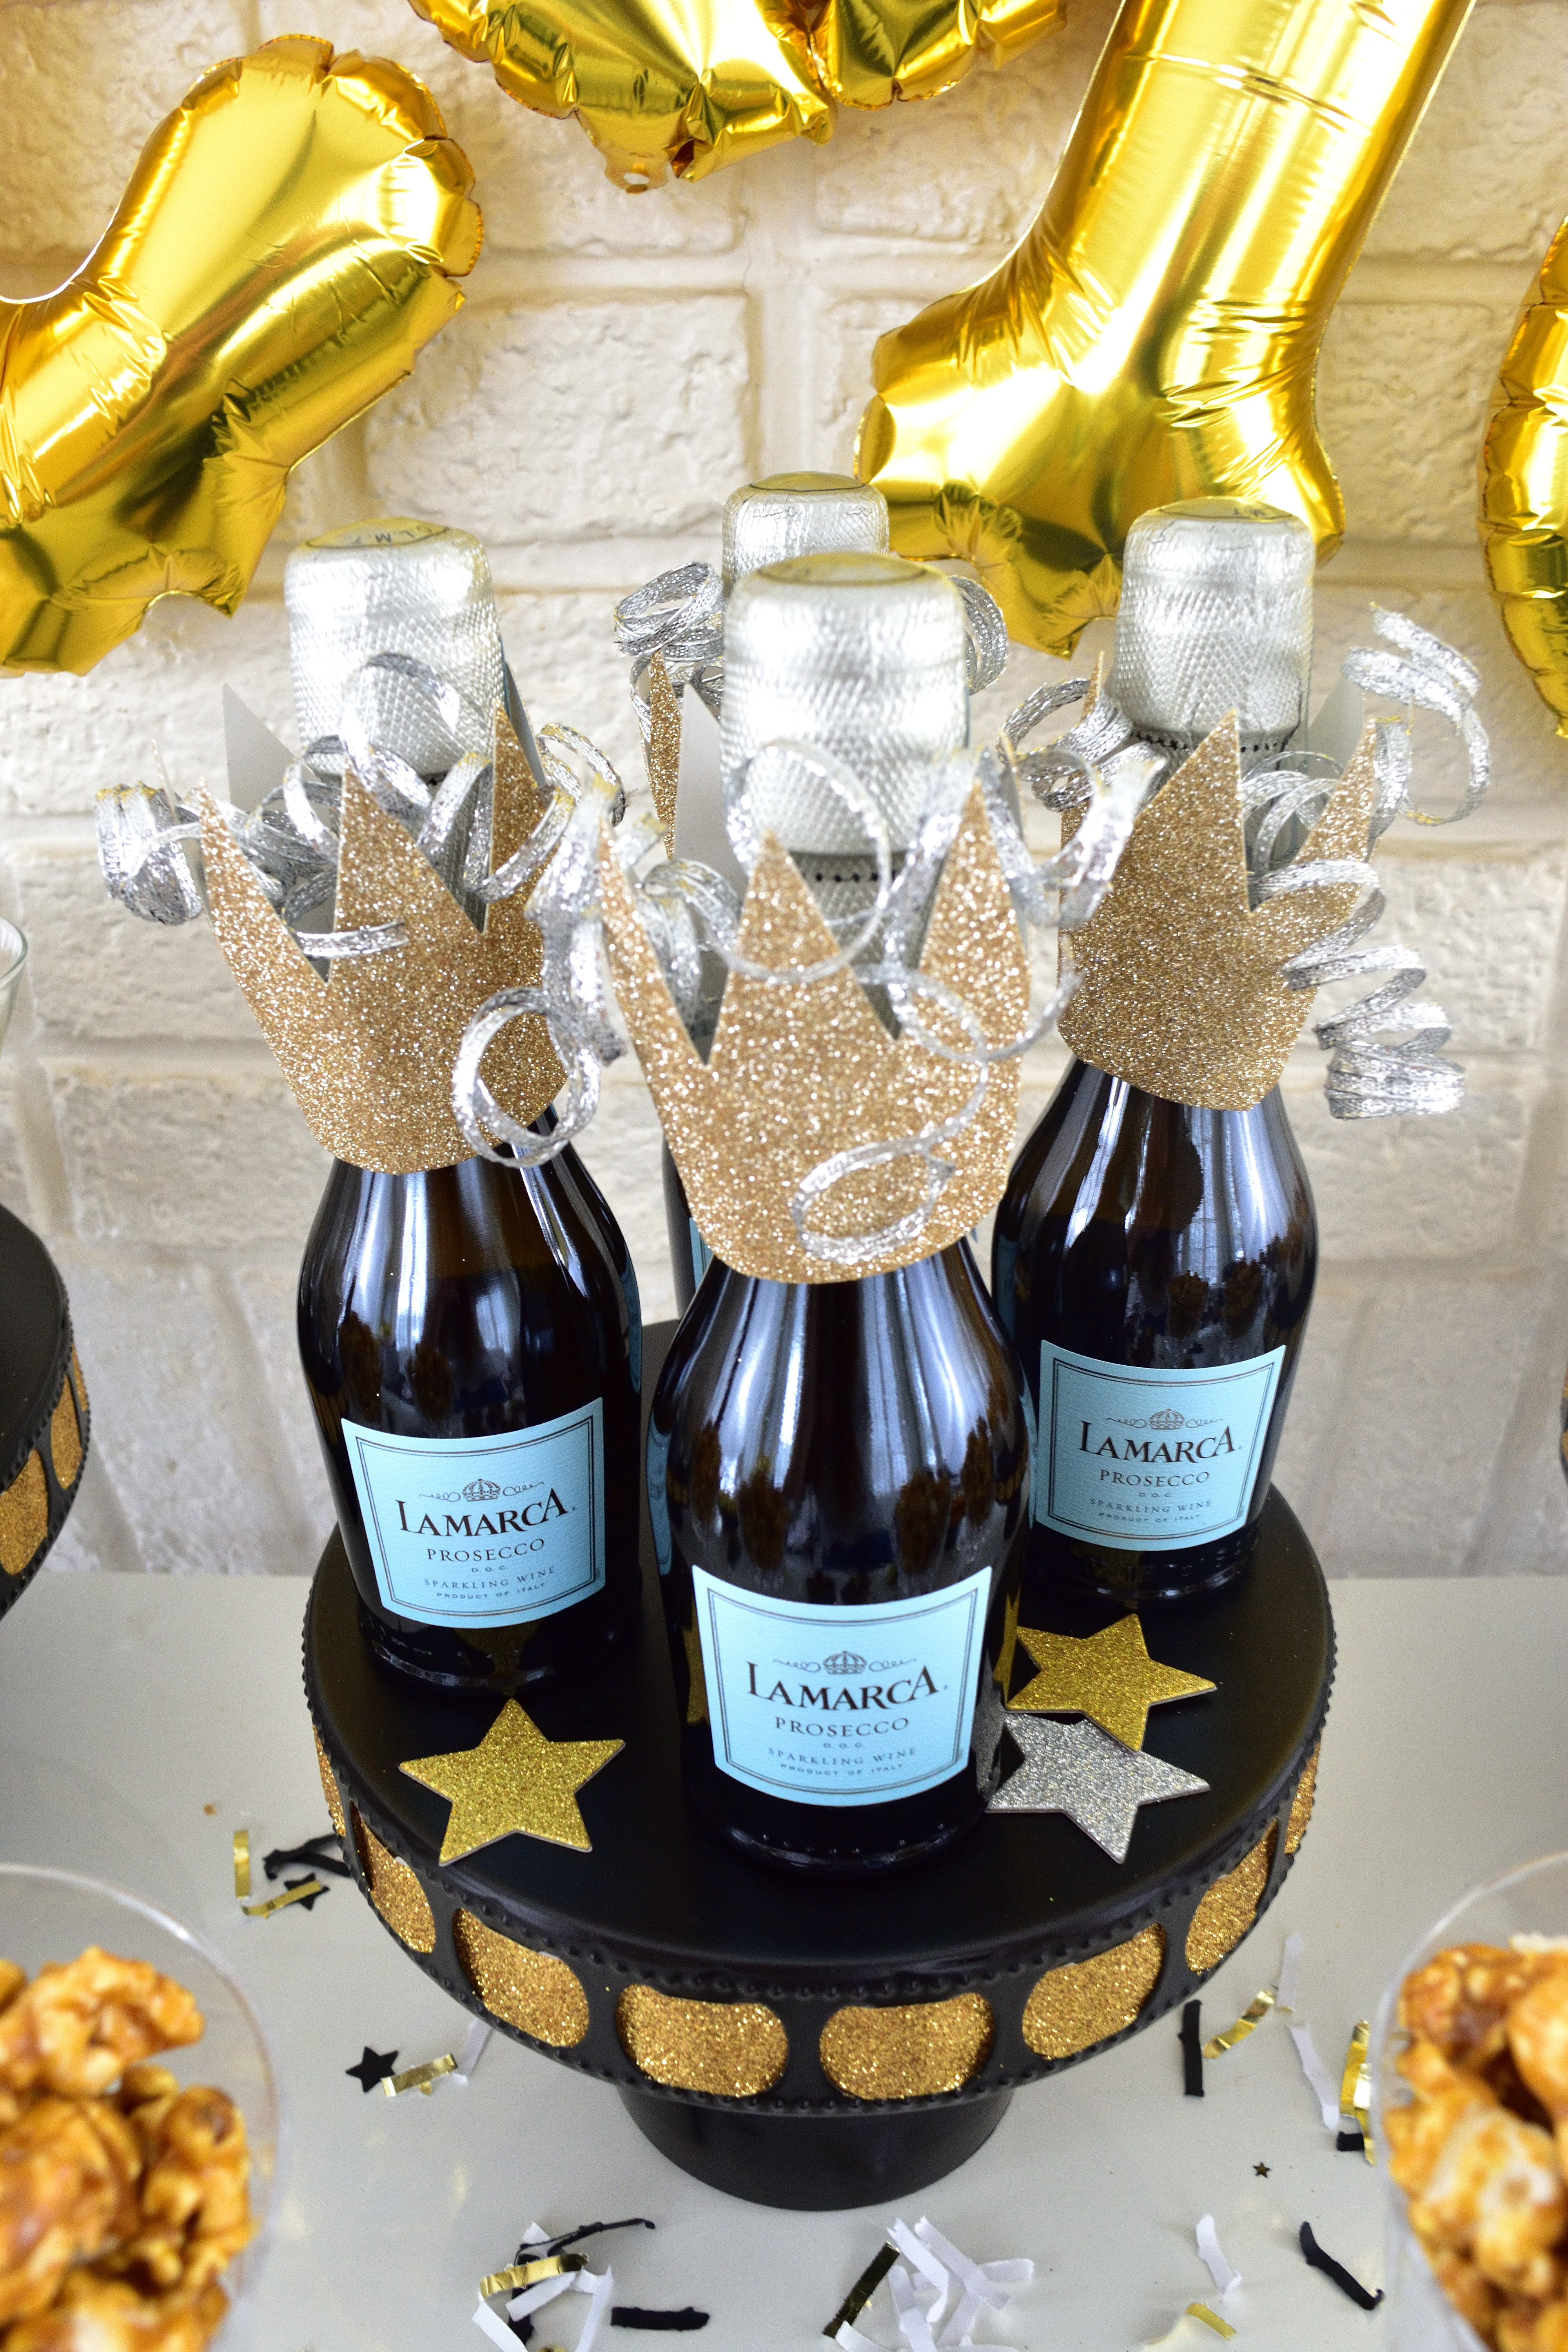 New Year's Eve party table ideas that are festive and easy!